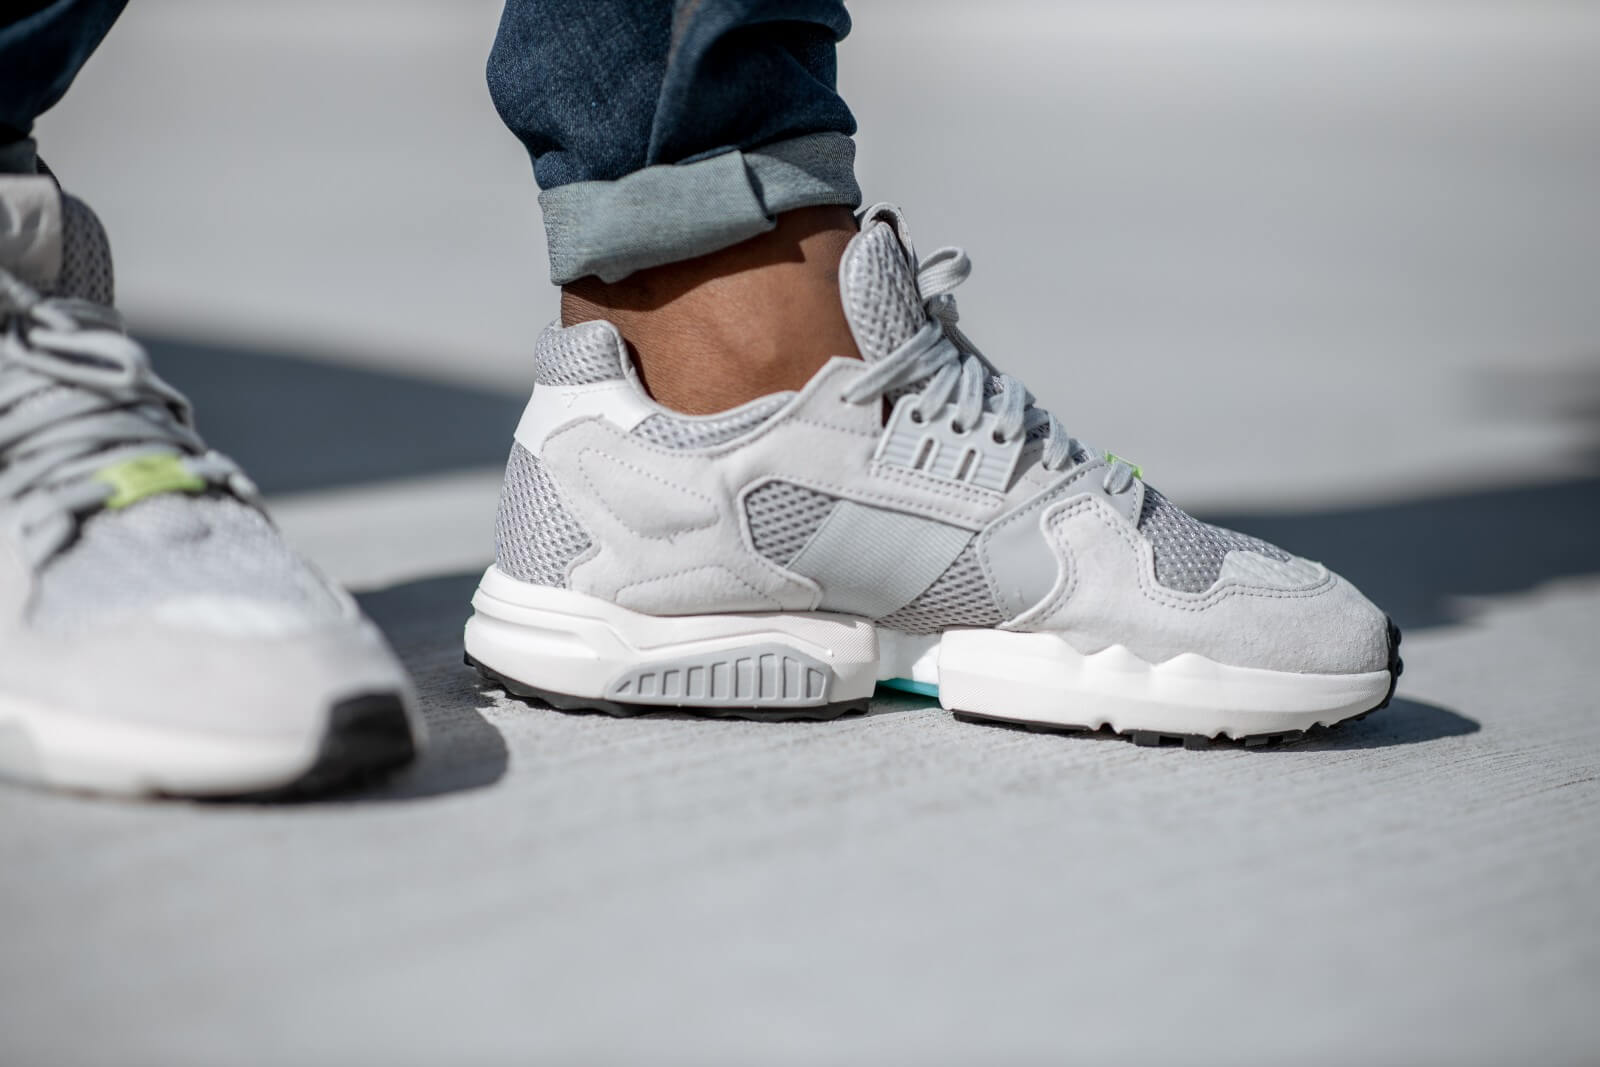 Adidas ZX Torsion Grey Two/Core White - EE4809